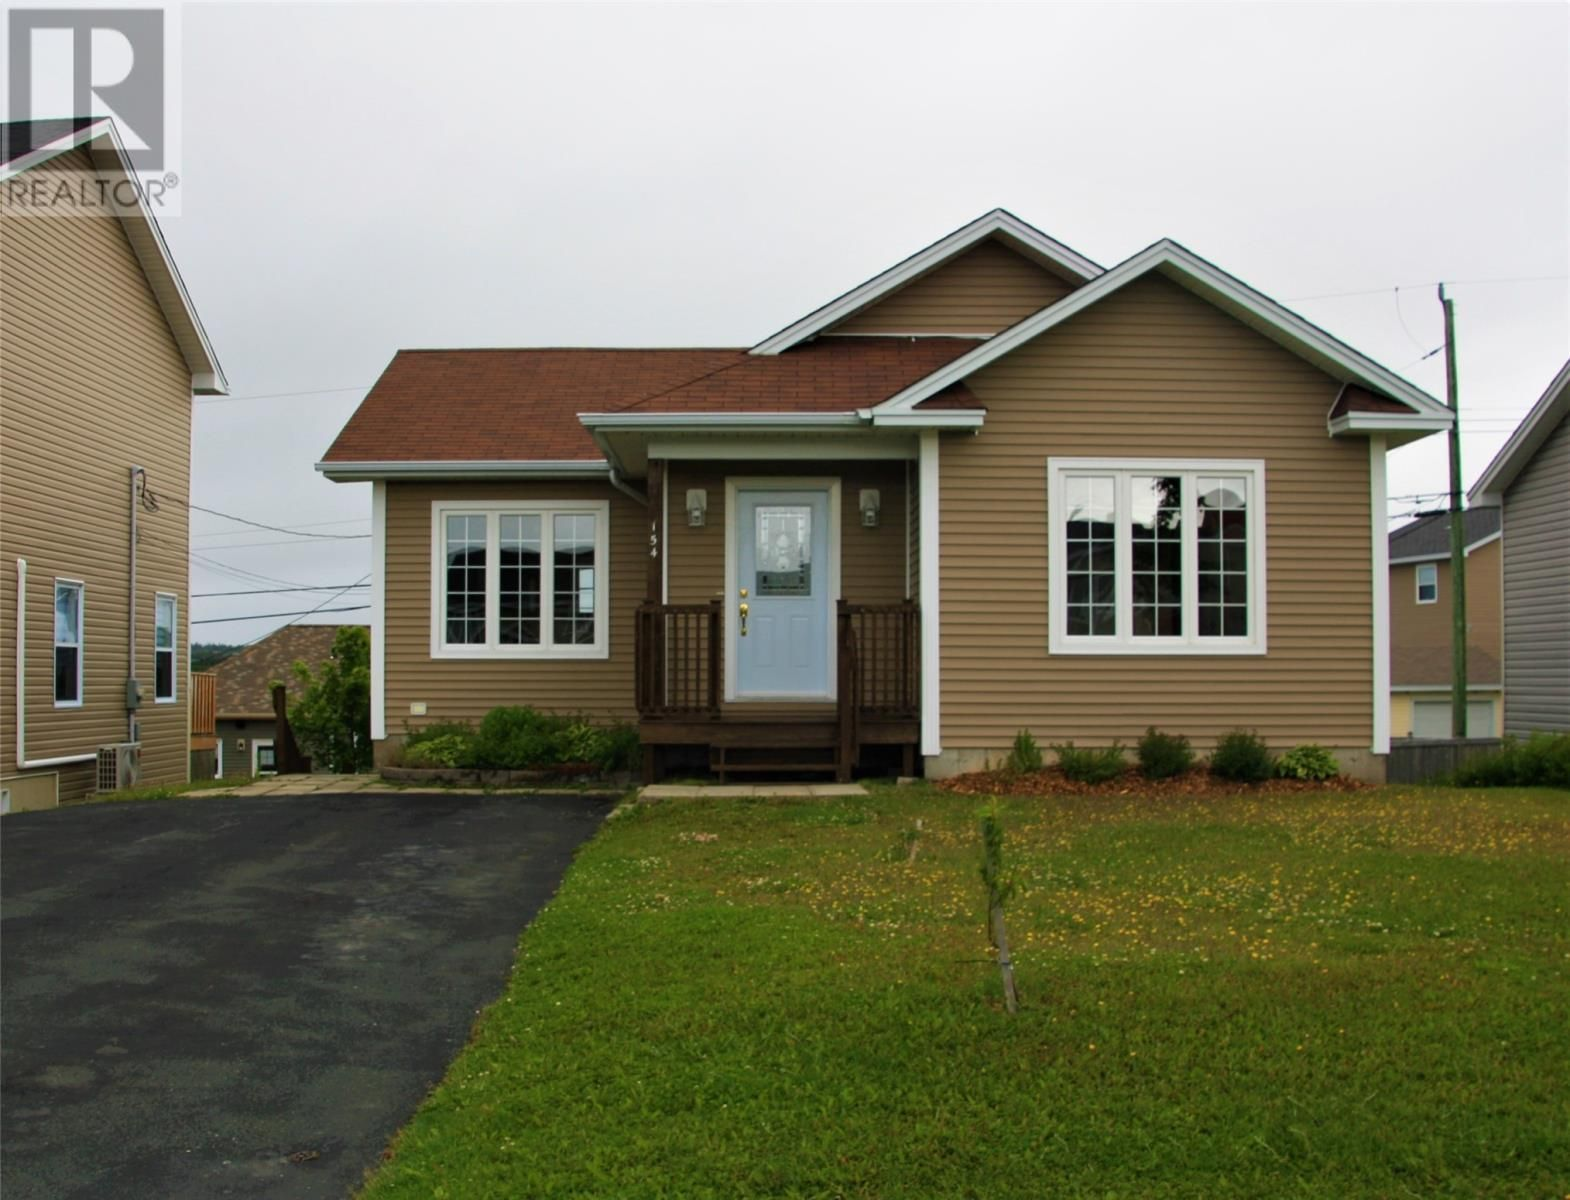 Main Photo: 154 Mallow Drive in Paradise: House for sale : MLS®# 1233081